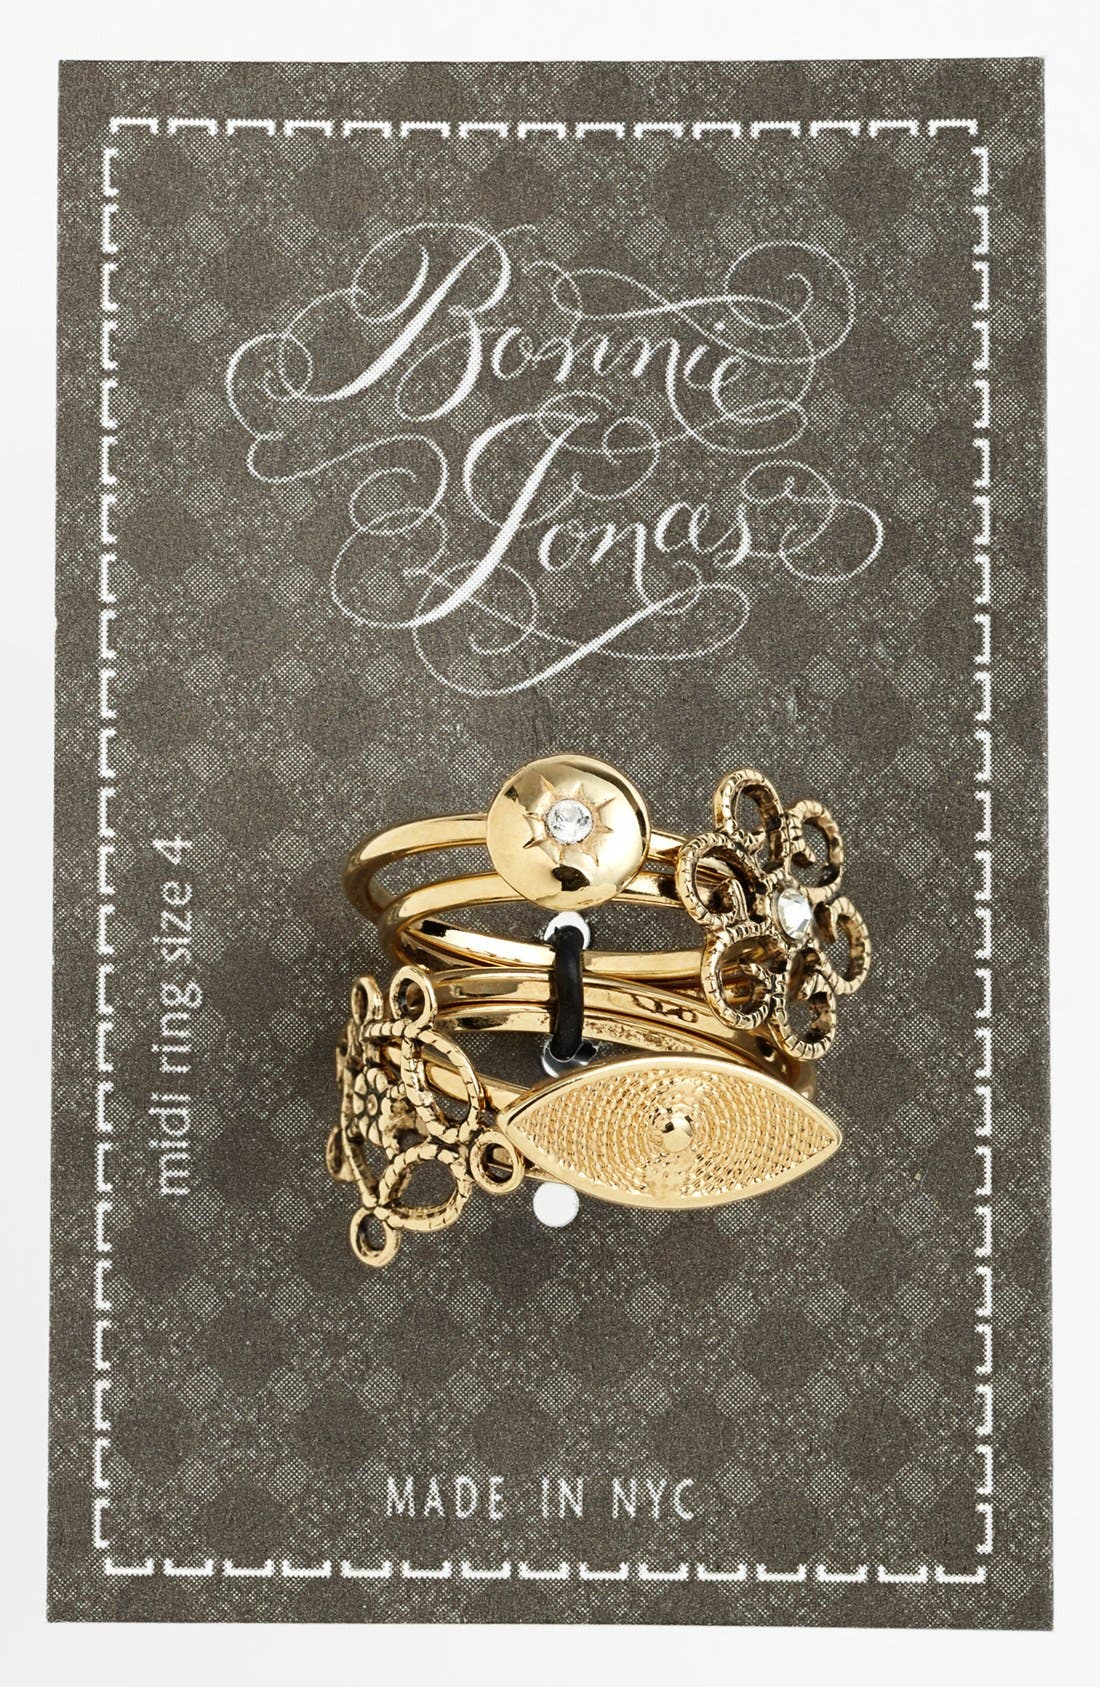 Alternate Image 1 Selected - Bonnie Jonas 'Ornamental Eye' Midi Rings (Set of 4)